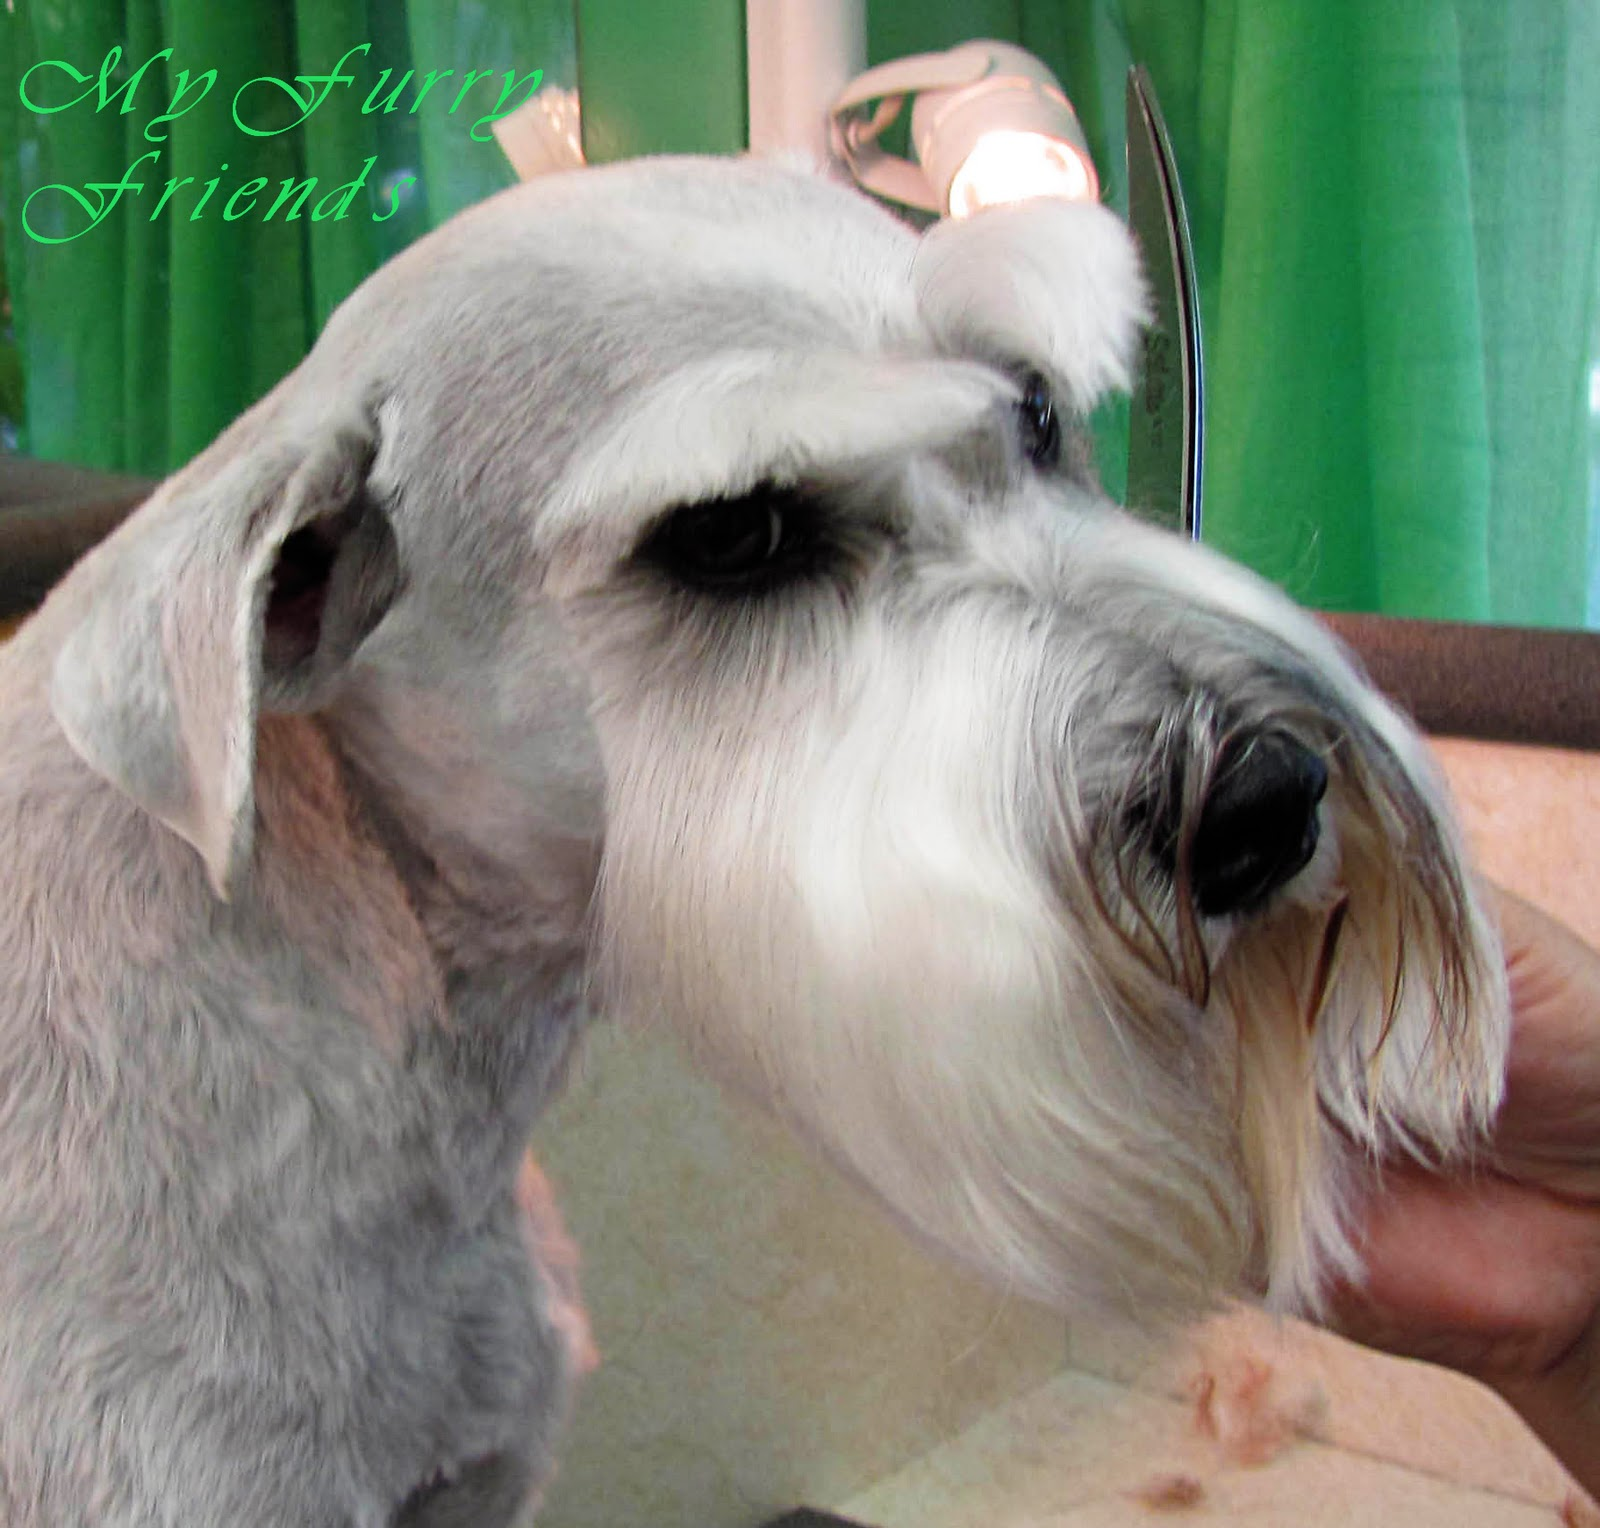 Pet grooming the good the bad the furry using clip comb tuesday november 20 2012 solutioingenieria Image collections